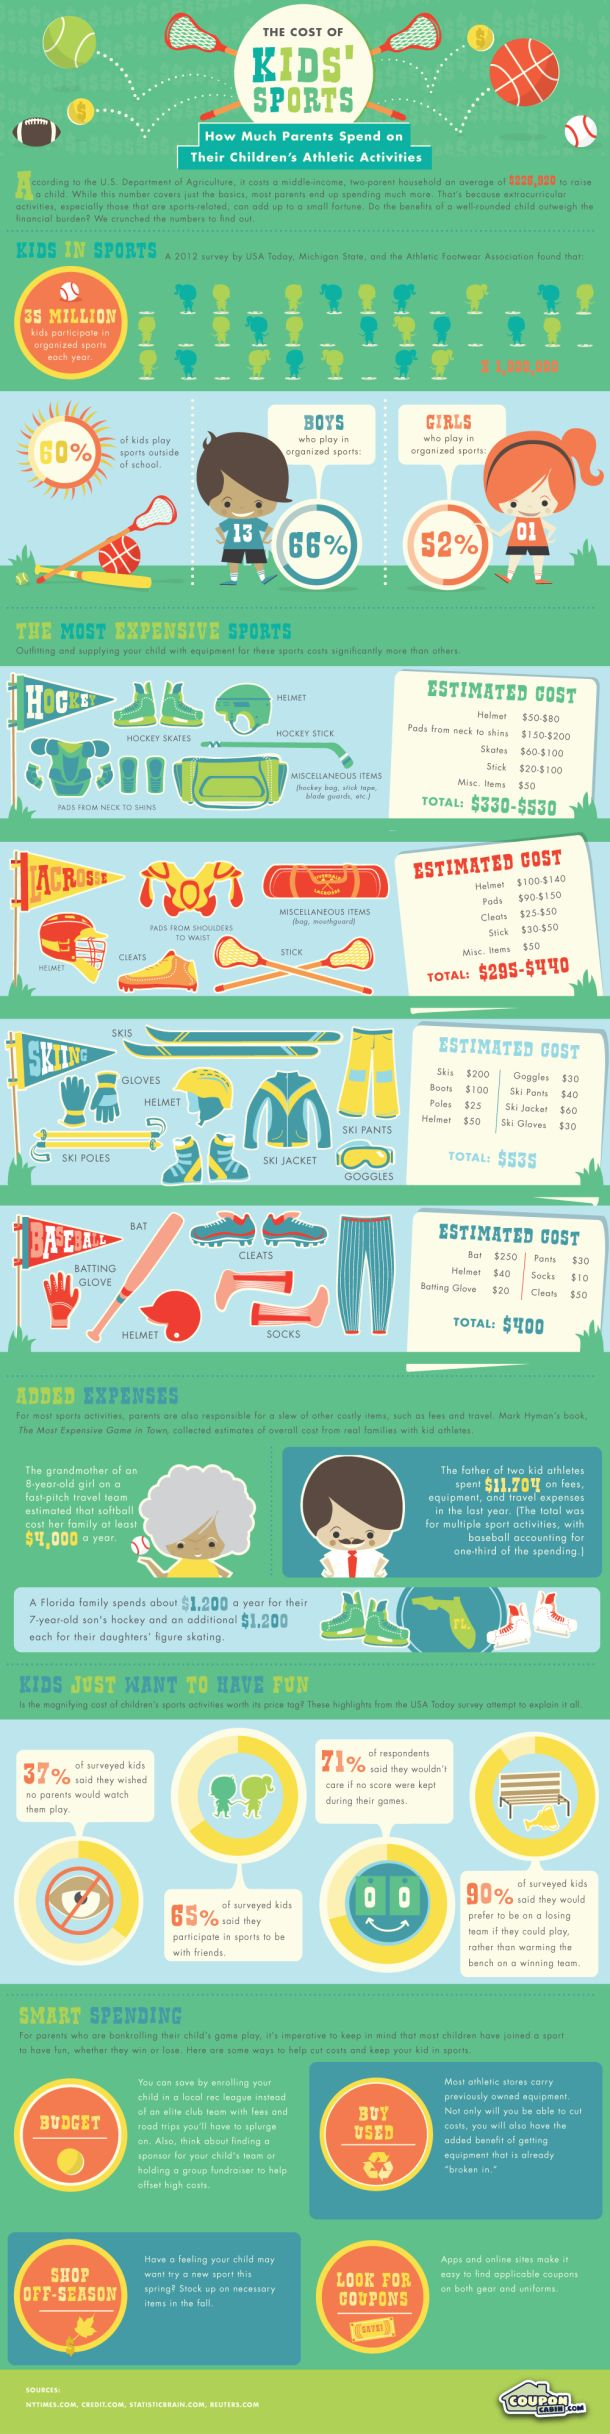 The Cost of Kid's Sports [INFOGRAPHIC] #kids #sports